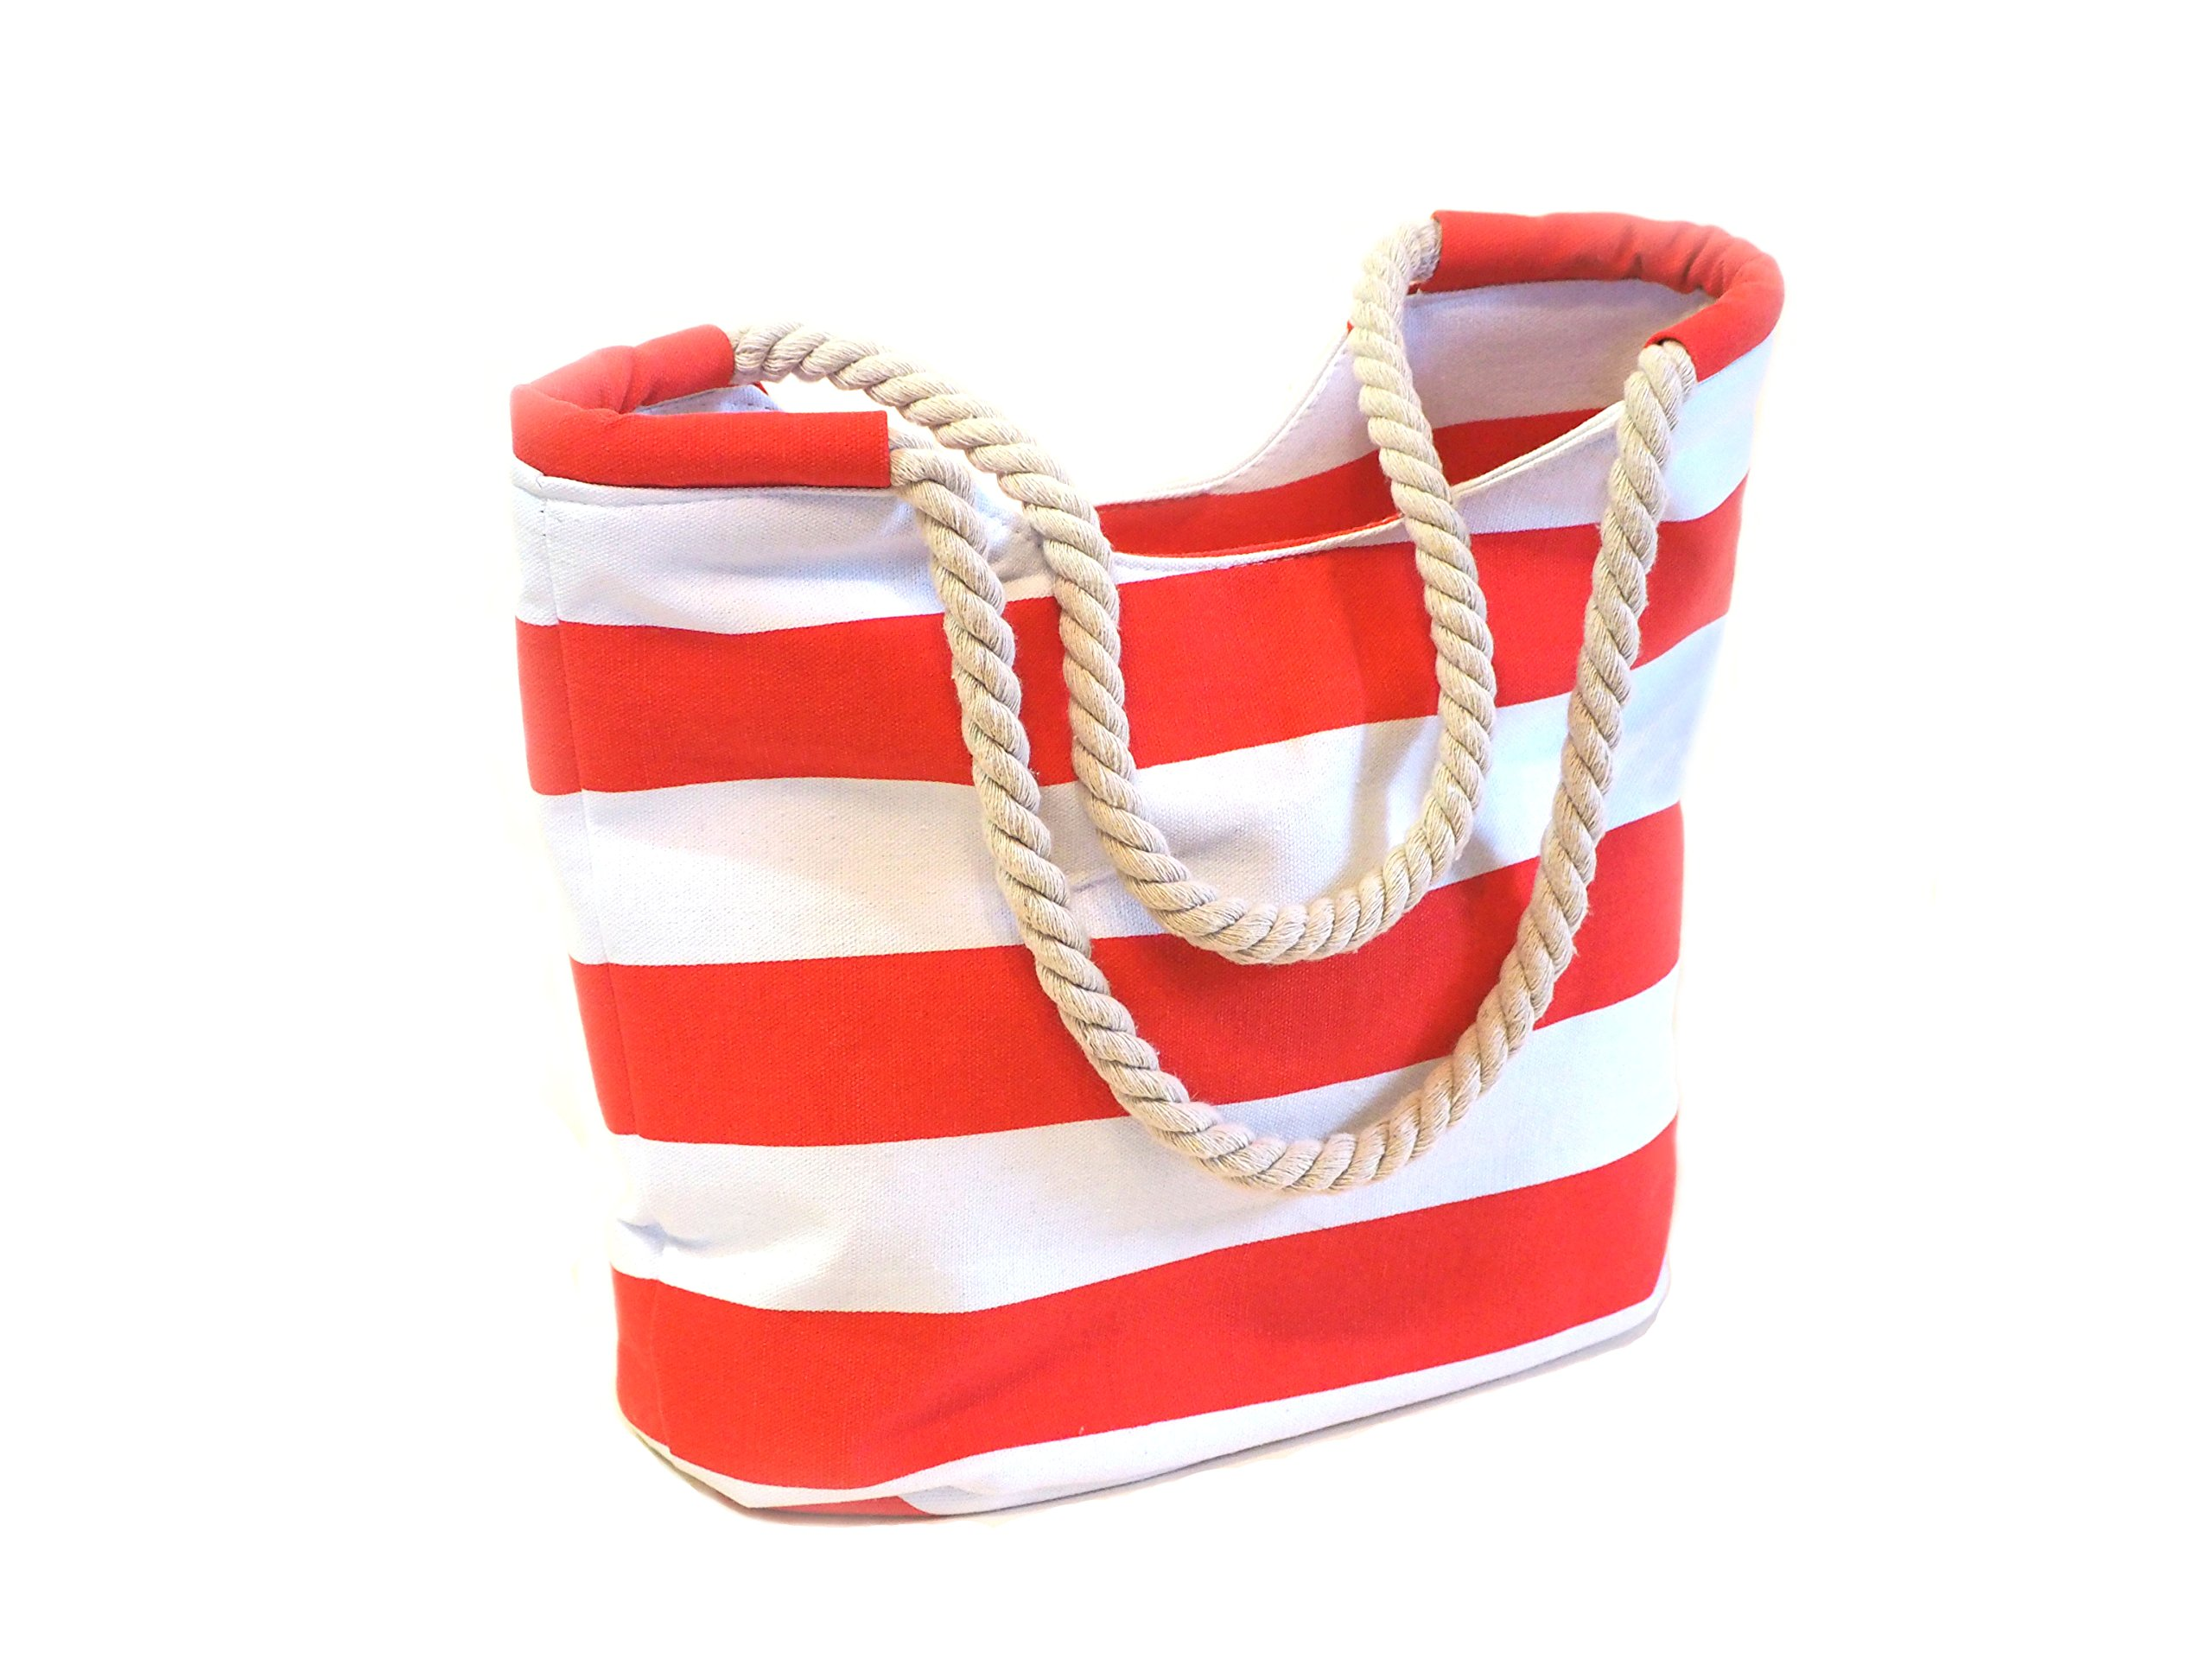 Canvas Beach Bag for Women, Vacation Tote With Cotton Rope Handles by Lalimi